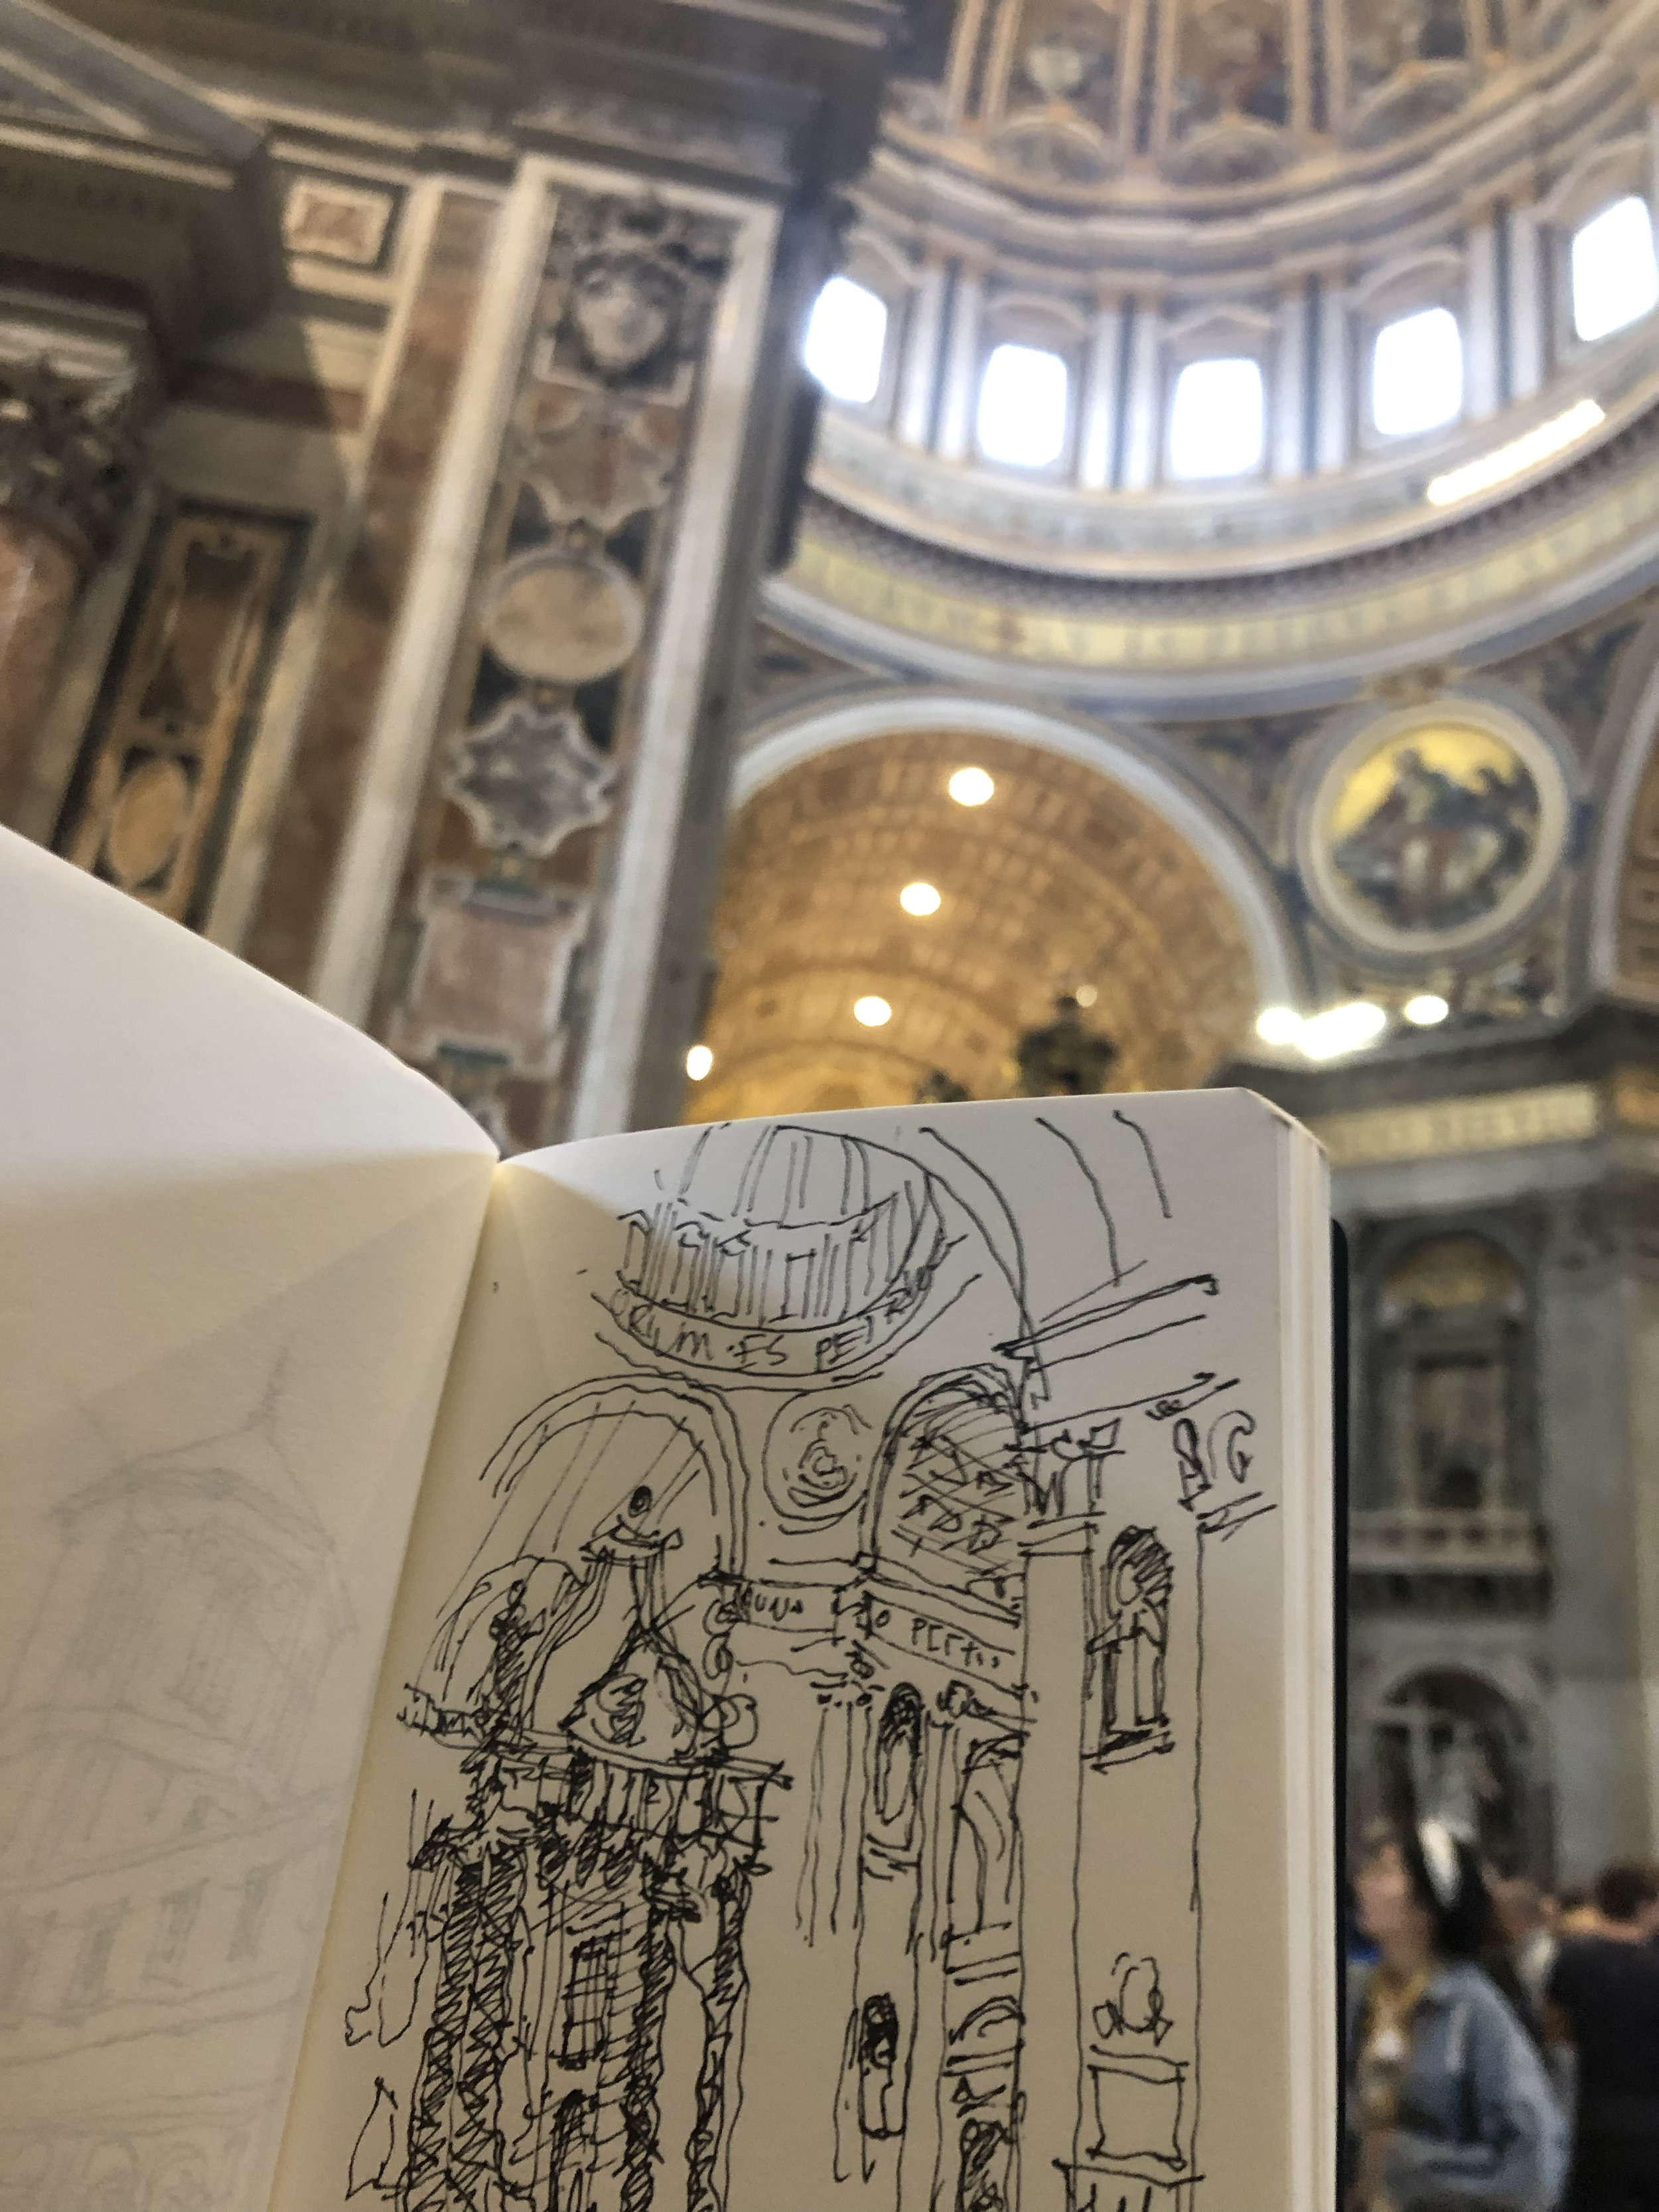 - Consider joining one of Tom's Italy programs for a first-hand experience sketching and scrapbooking.